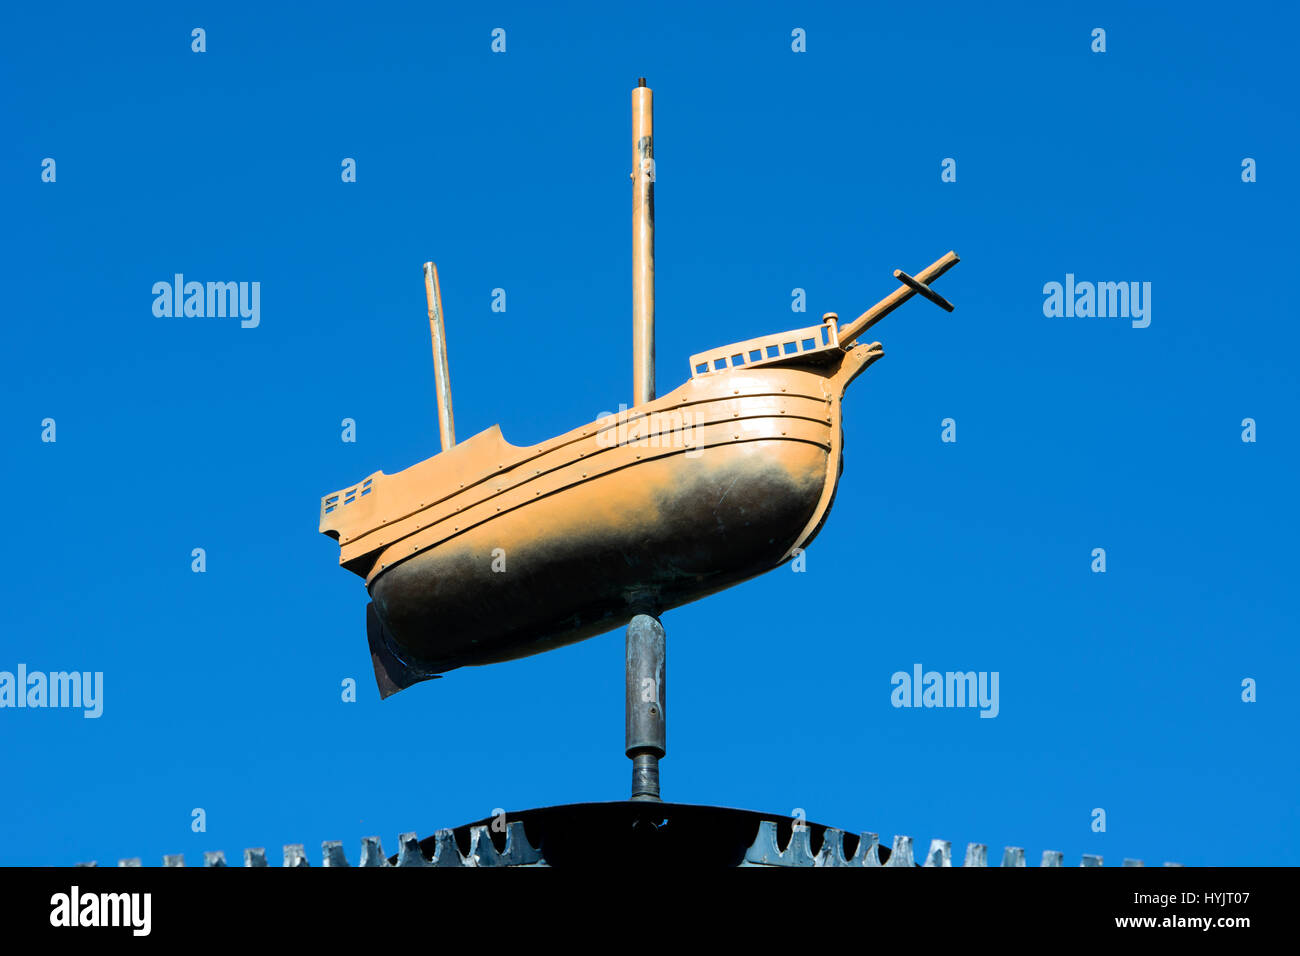 A ship on top of the bandstand in Castle Park, Bristol, UK Stock Photo